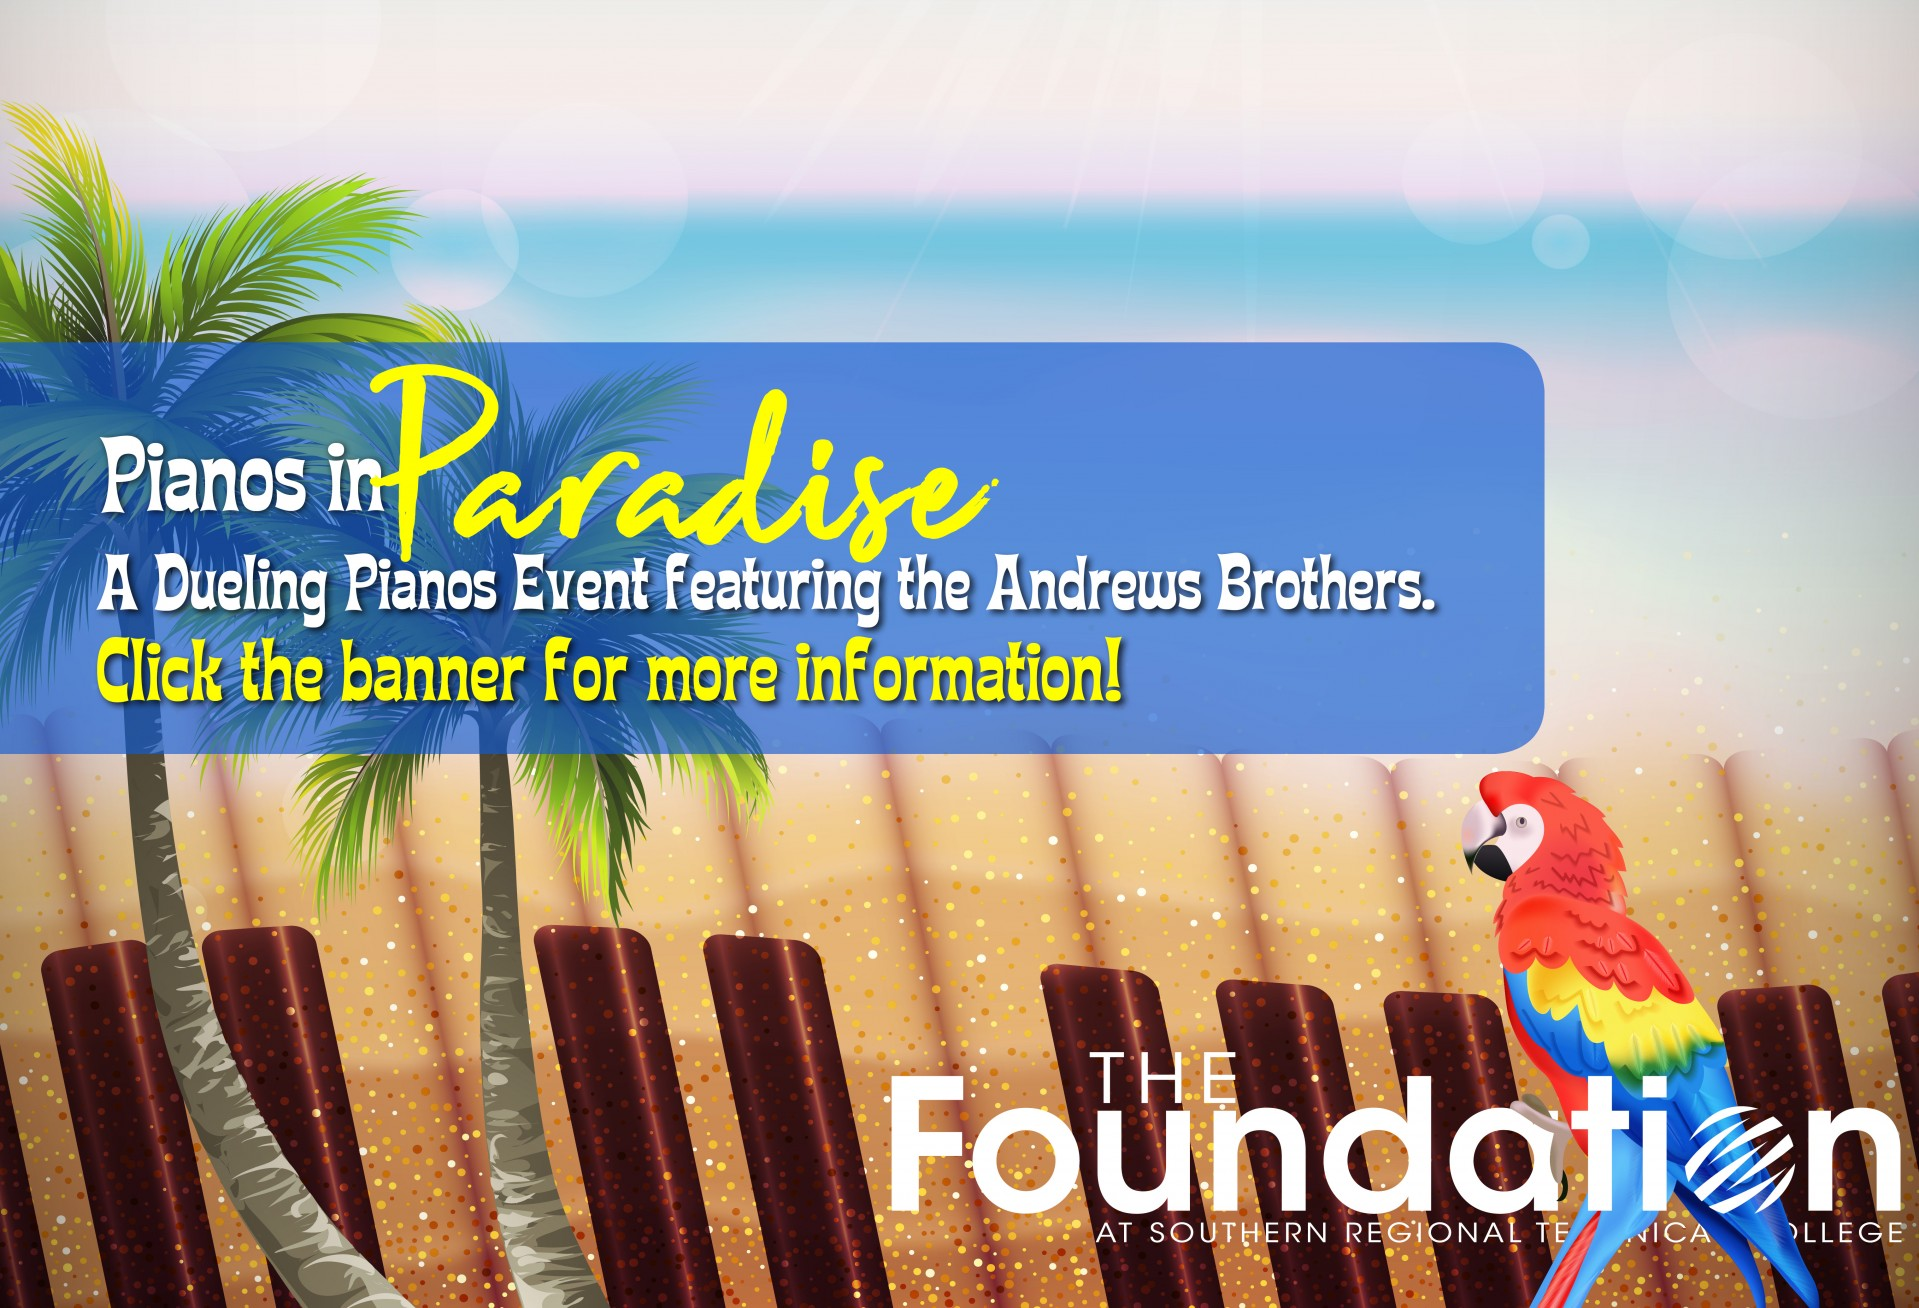 Pianos in Paradise SRTC Foundation Fundraiser